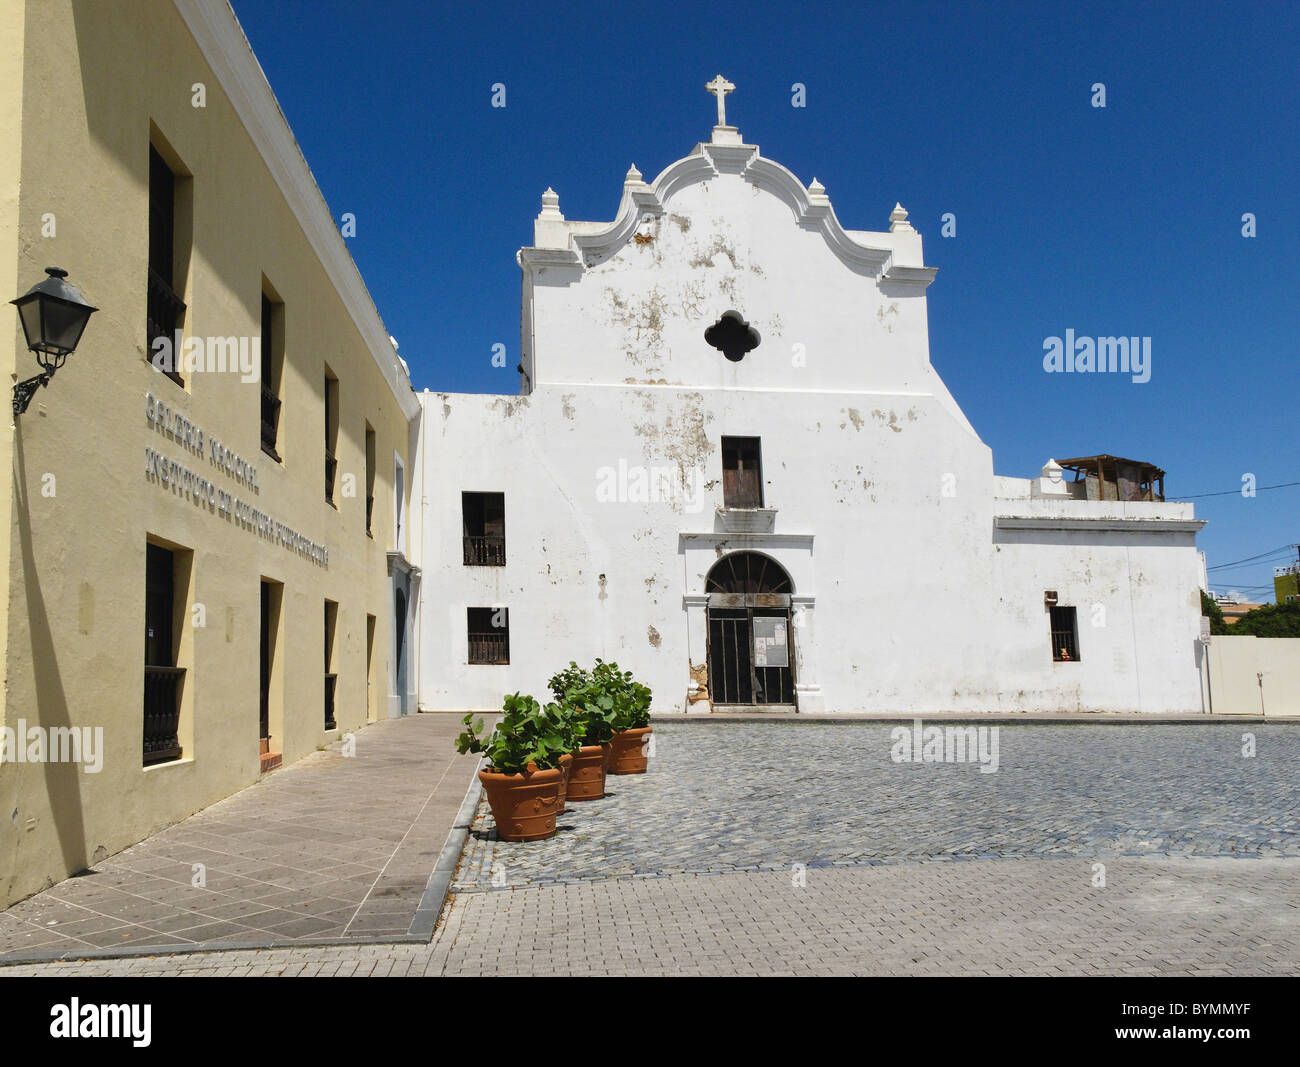 c6477bfbe5a Puerto San Jose Stock Photos   Puerto San Jose Stock Images - Alamy